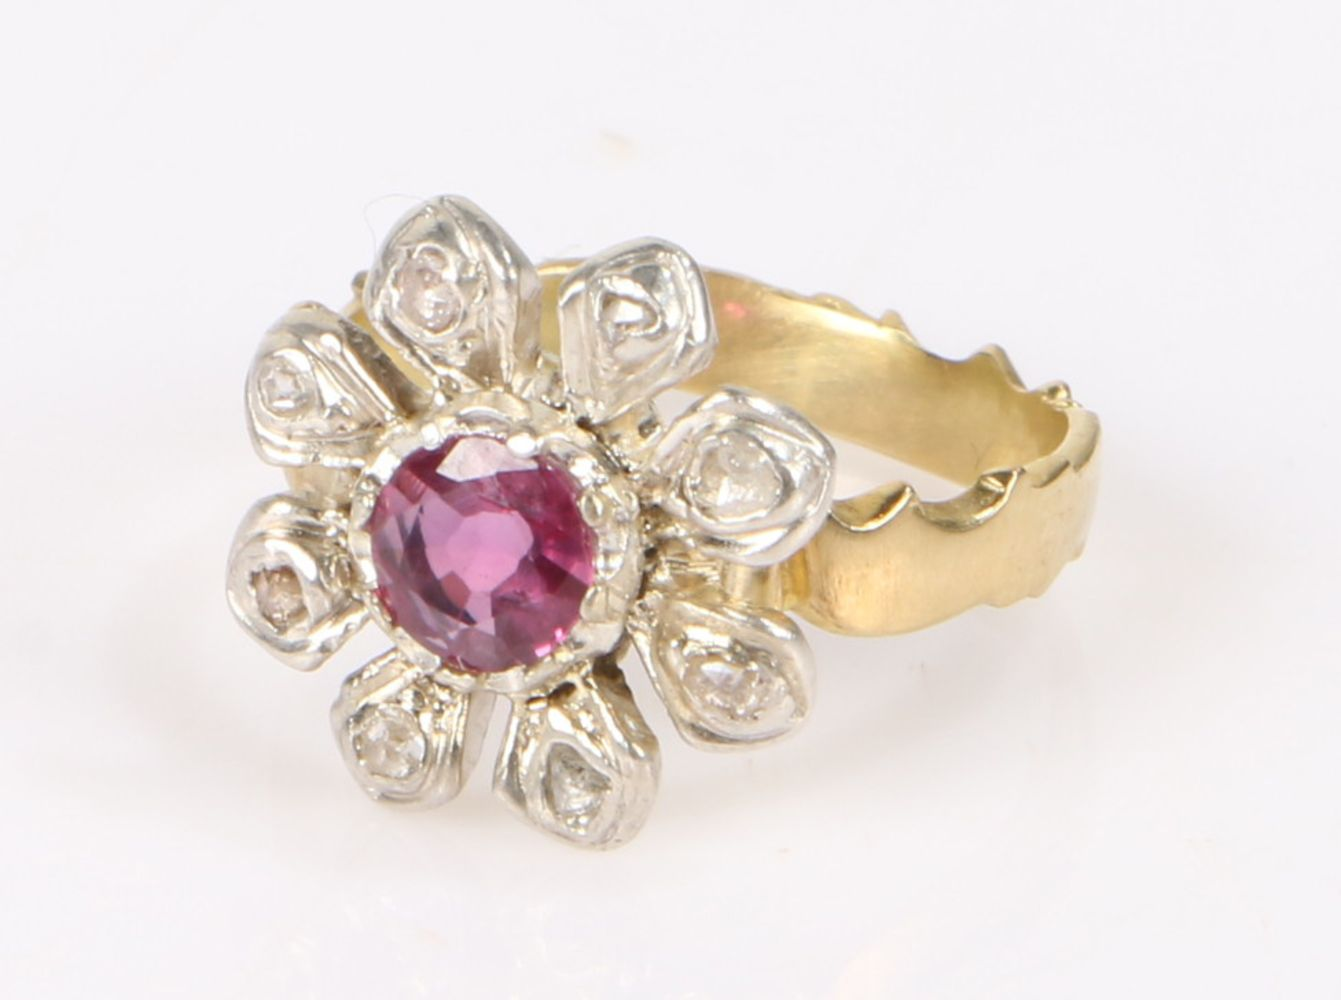 Timed Selected Jewellery Auction - Ending 25th July 2021 - Bishop & Miller Auctioneers Ltd